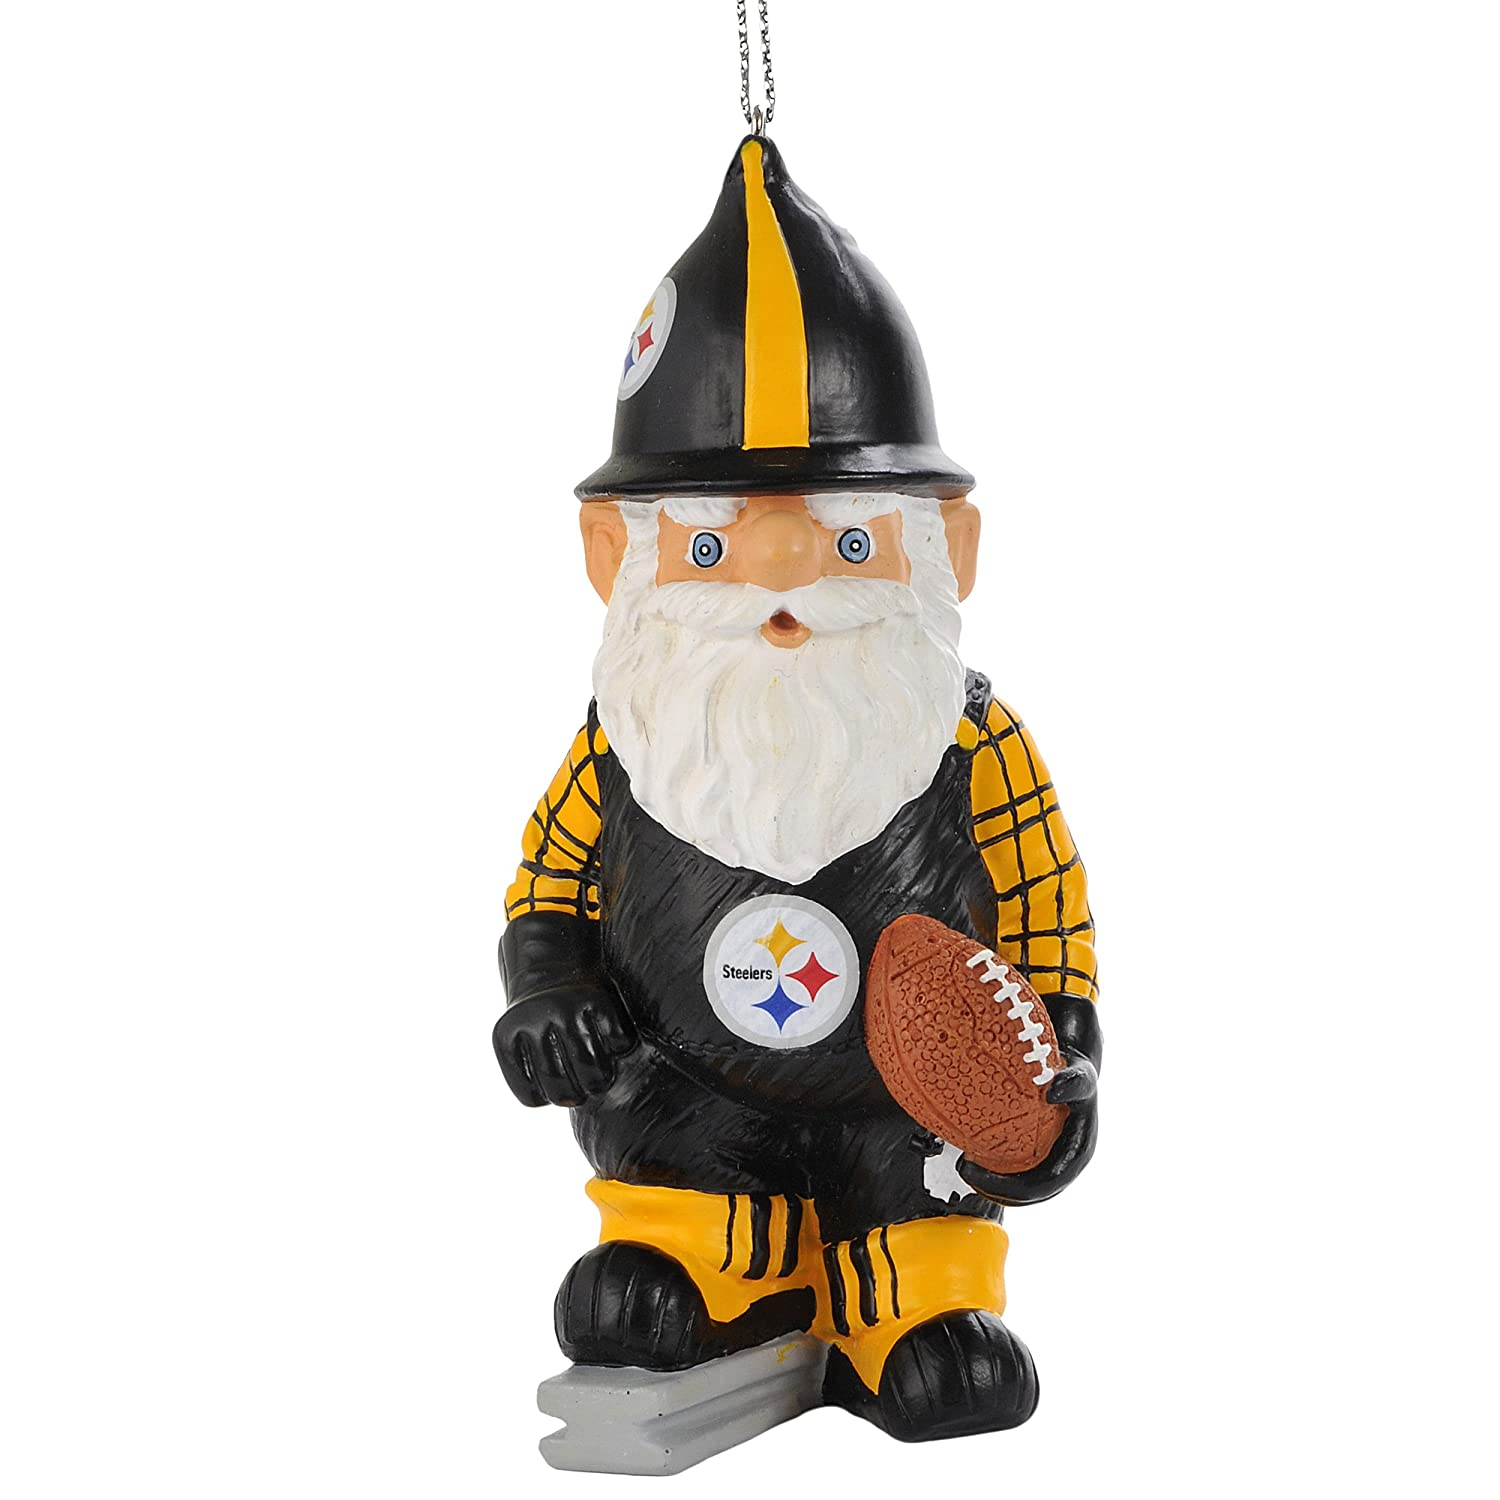 Amazon.com : NFL Pittsburgh Steelers Thematic Gnome Ornament ...